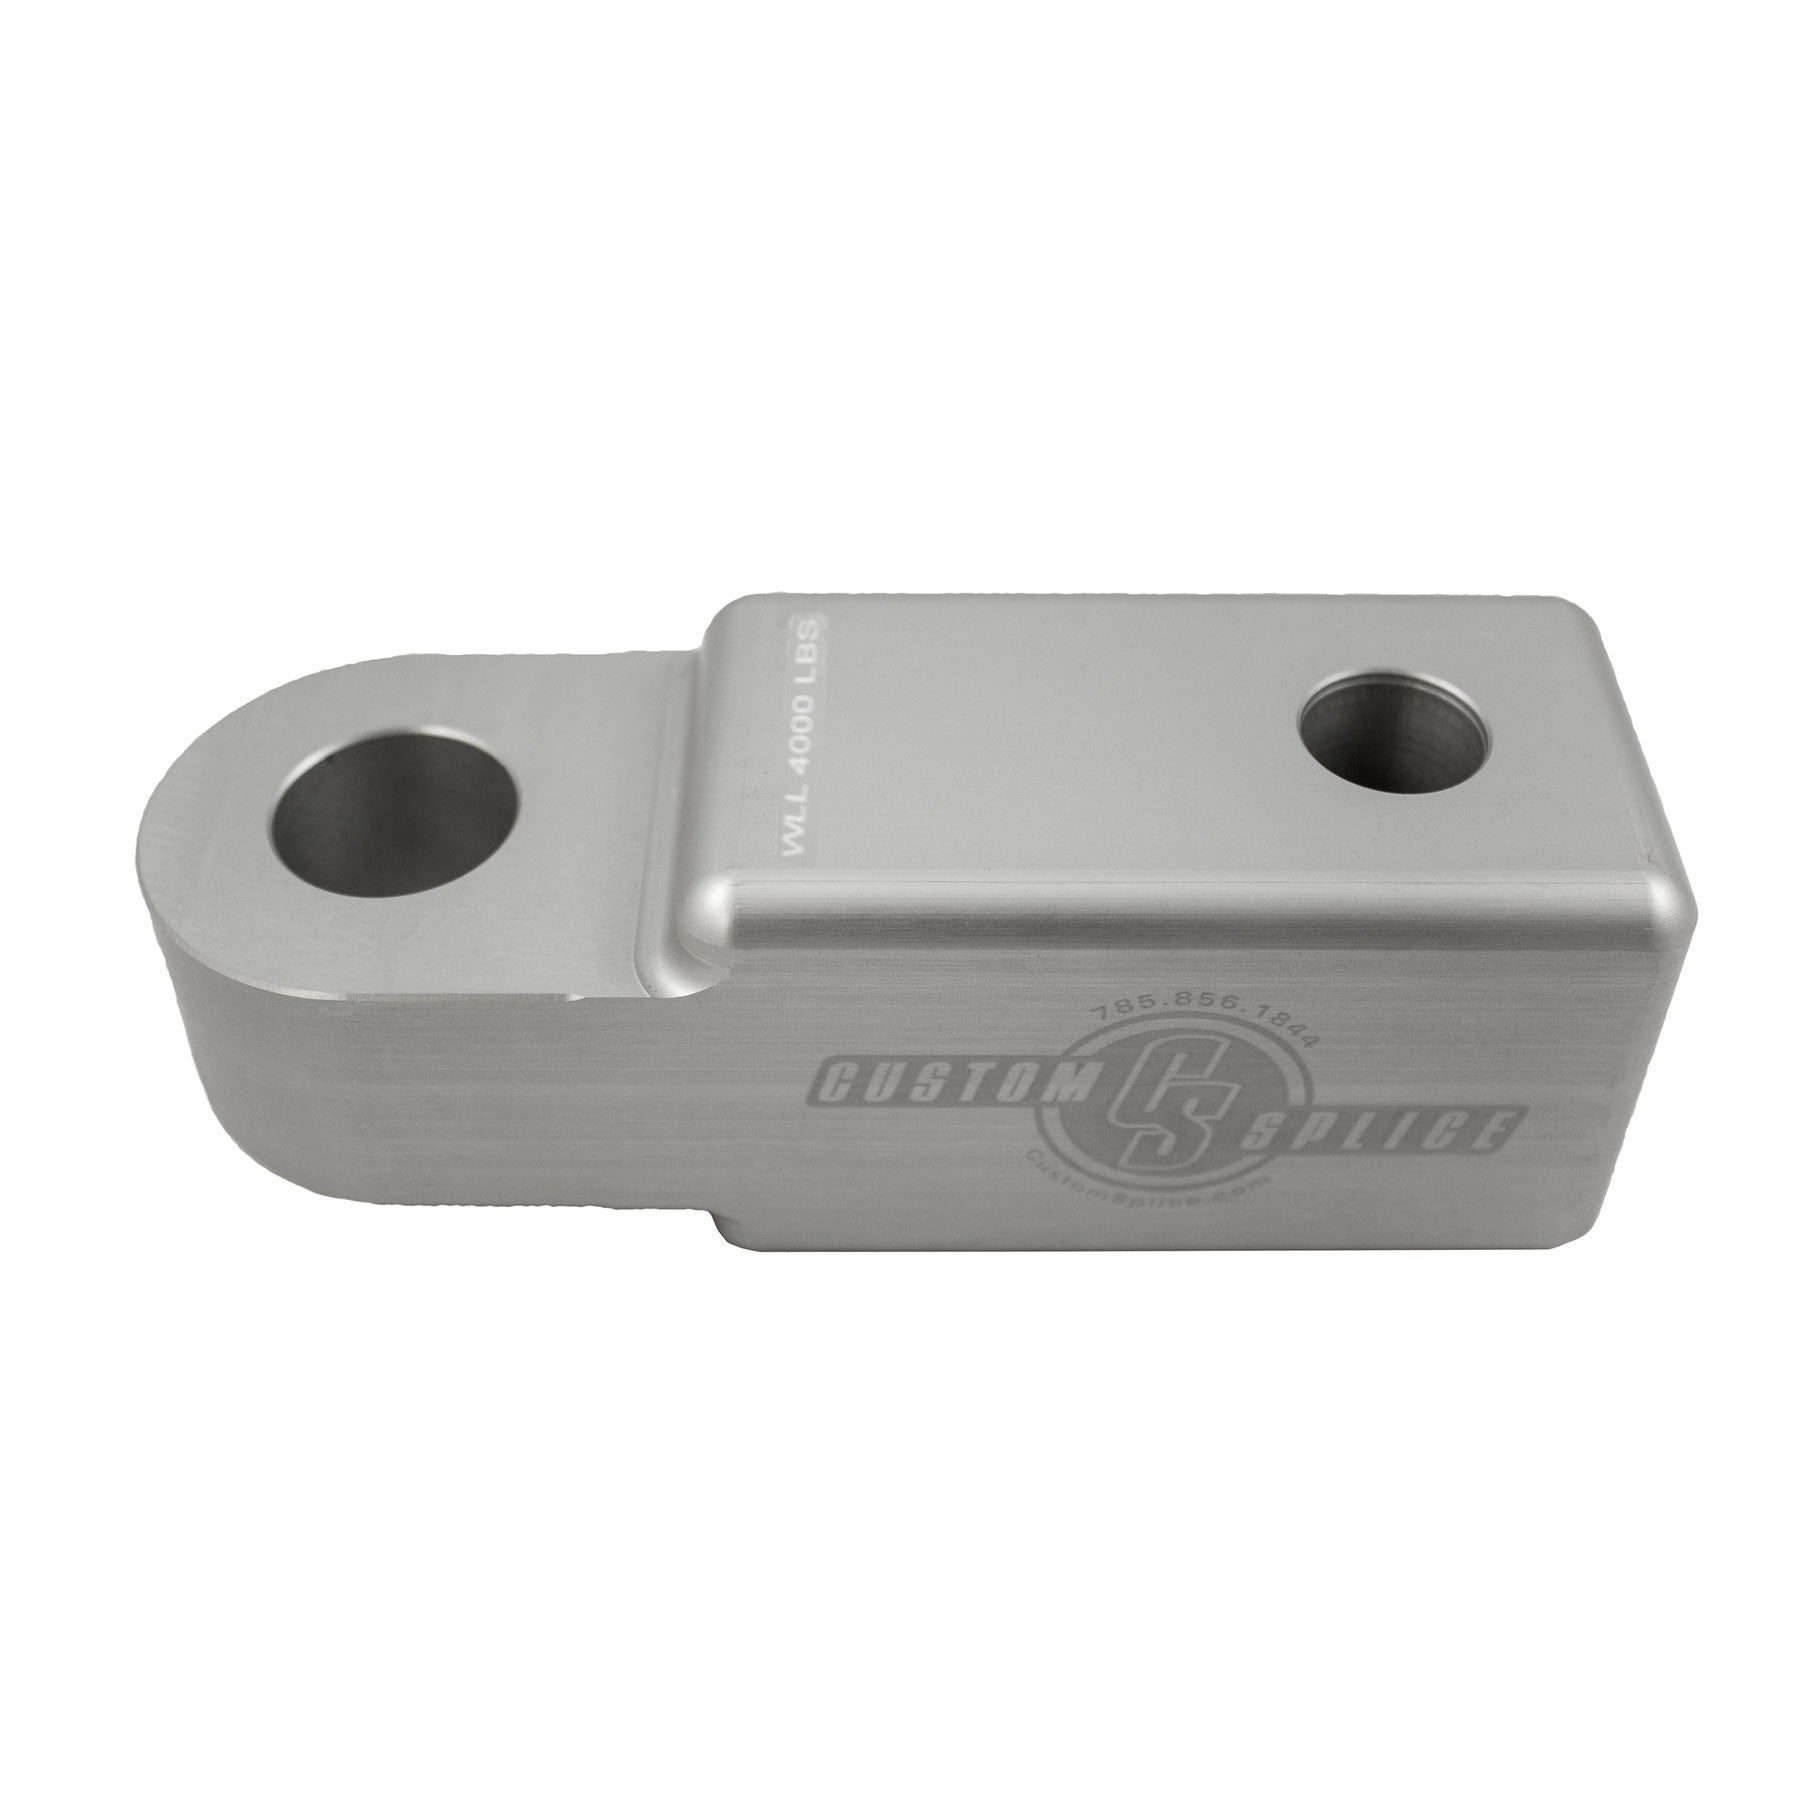 "Silver 1-1/4"" Hitch Receiver Adapters for Shackle Attachment - Side View."